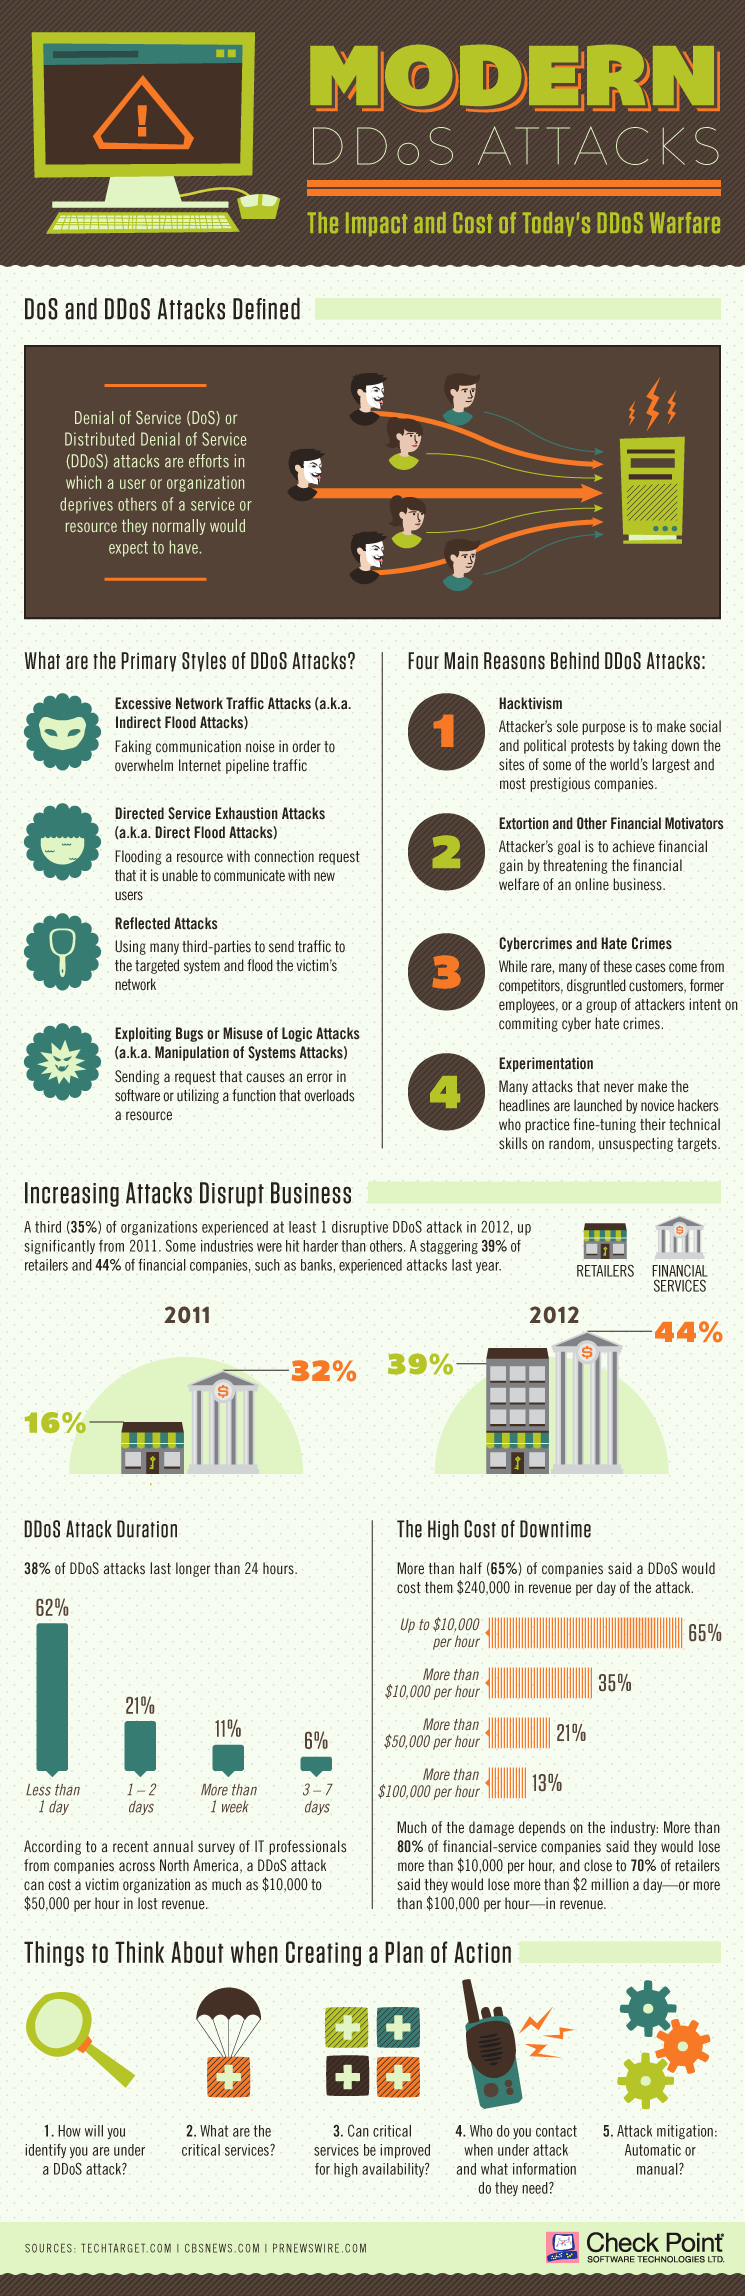 Infographic: Modern DDoS Attacks